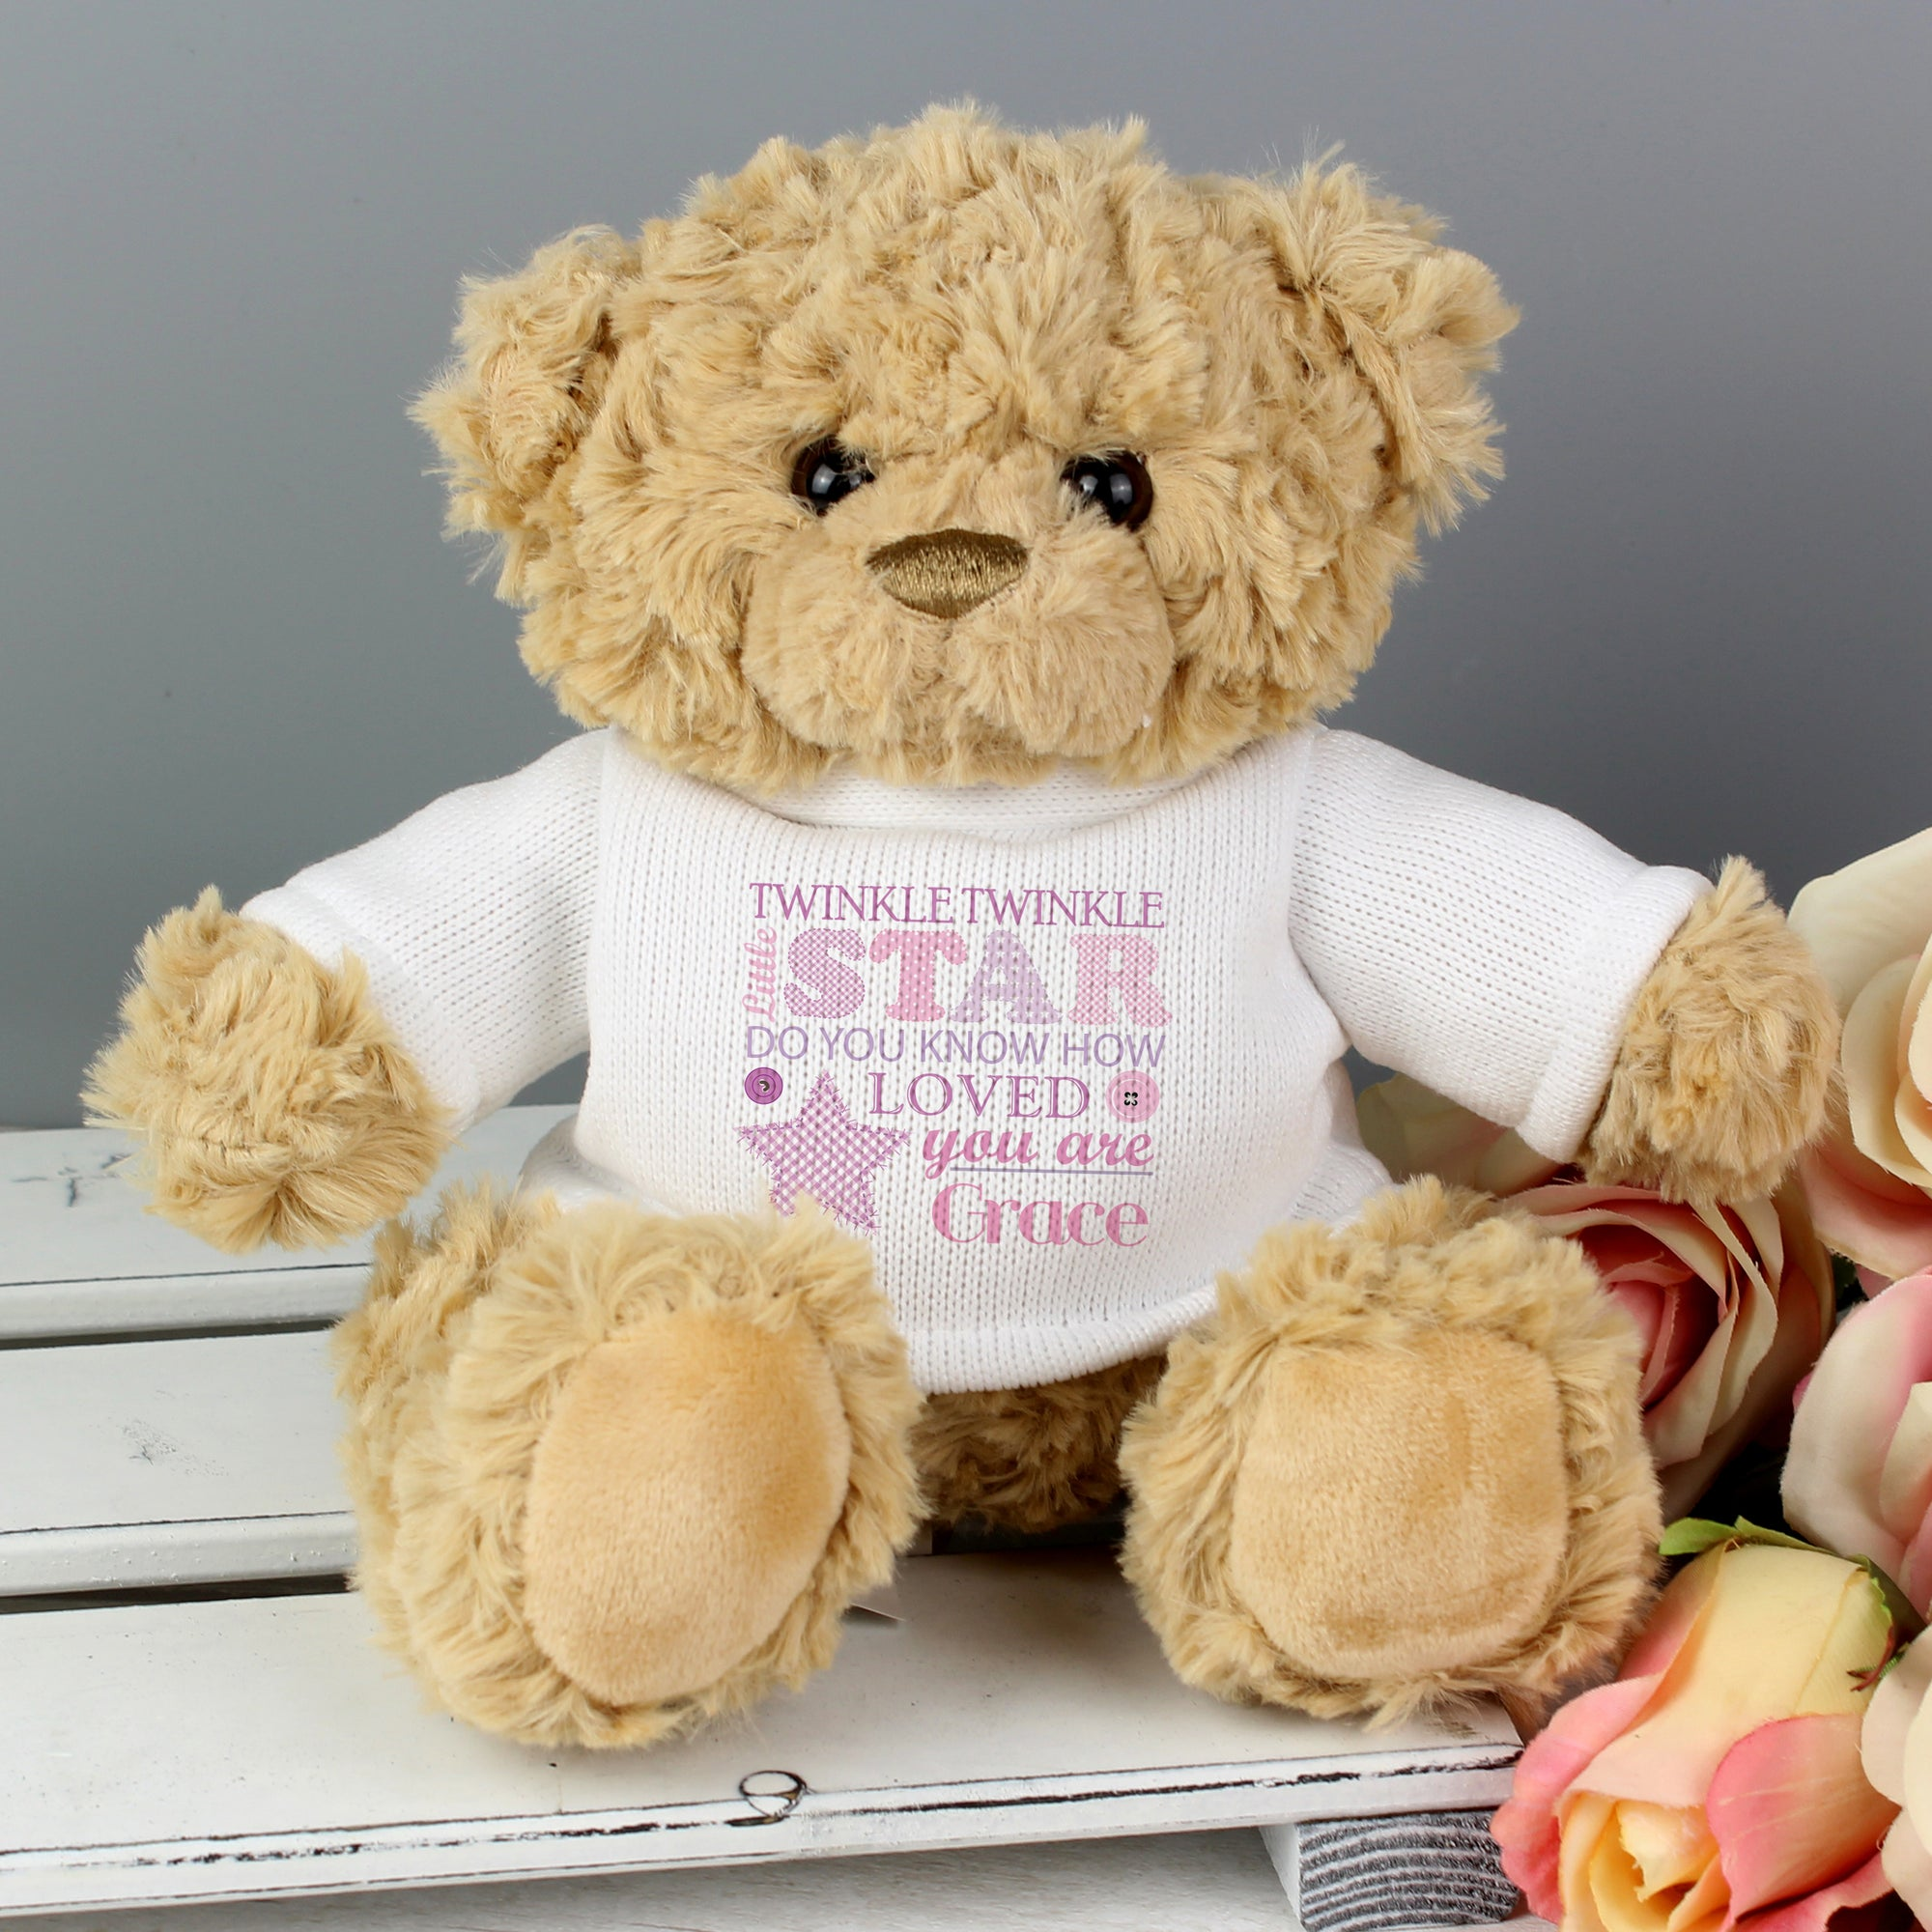 Image of a light brown soft traditional teddy bear wearing a white jumper with the text 'twinkle twinkle little star, do you know how loved you are' printed on it in a mixture of fonts and different shades of pink and purple text. You can then add a name of your choice which will be printed in pink after the fixed text.